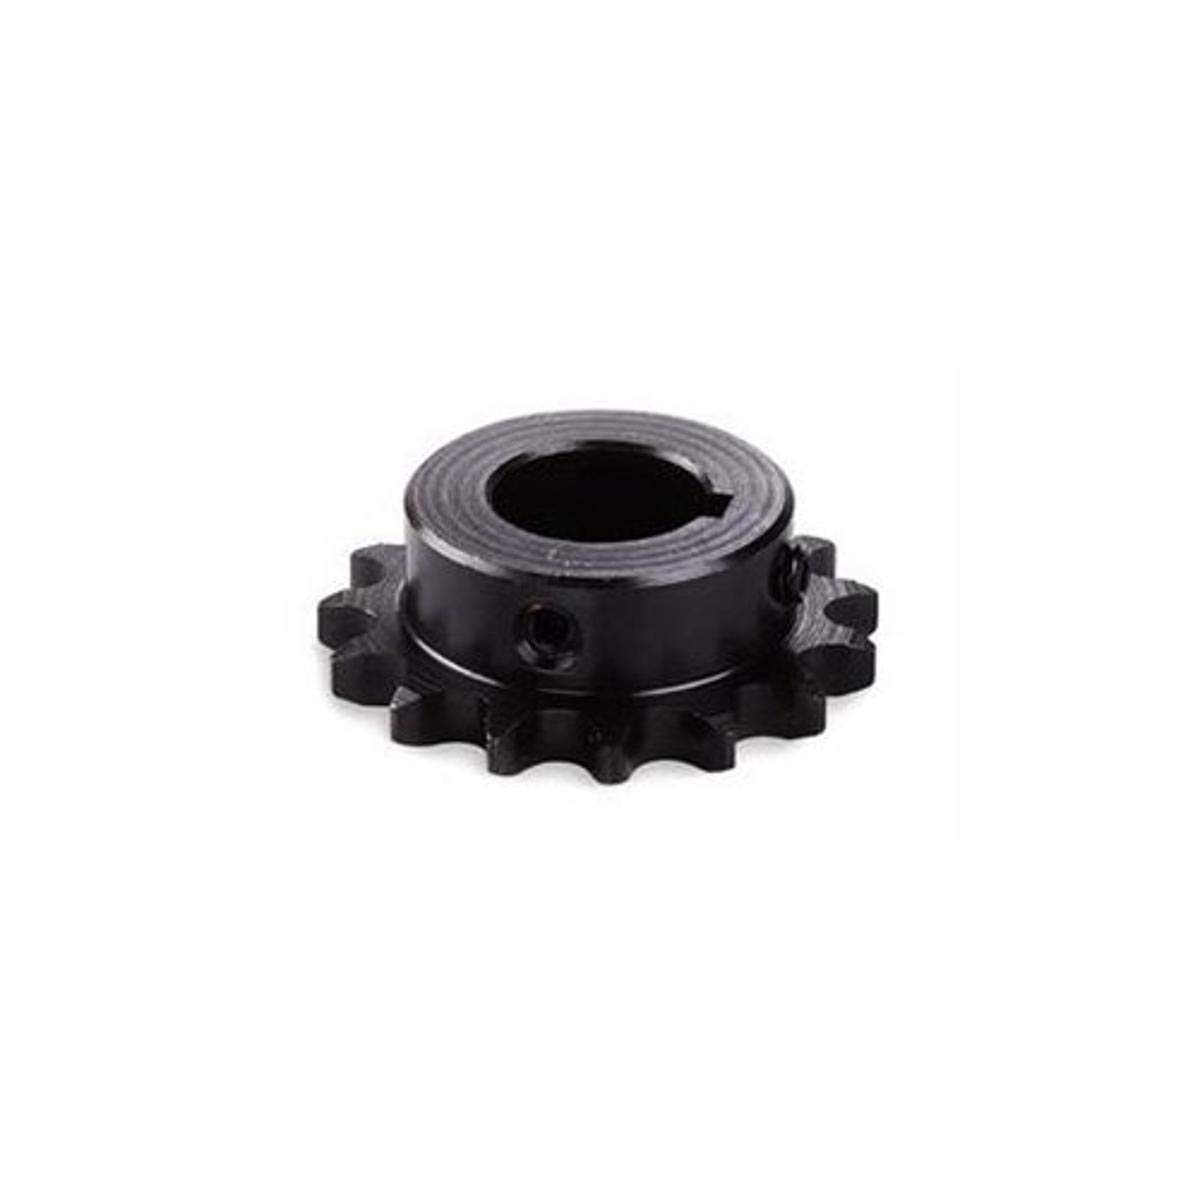 Big Bearing 40B35 35 Tooth Sprocket for #40 Roller Chain, 1-1/4